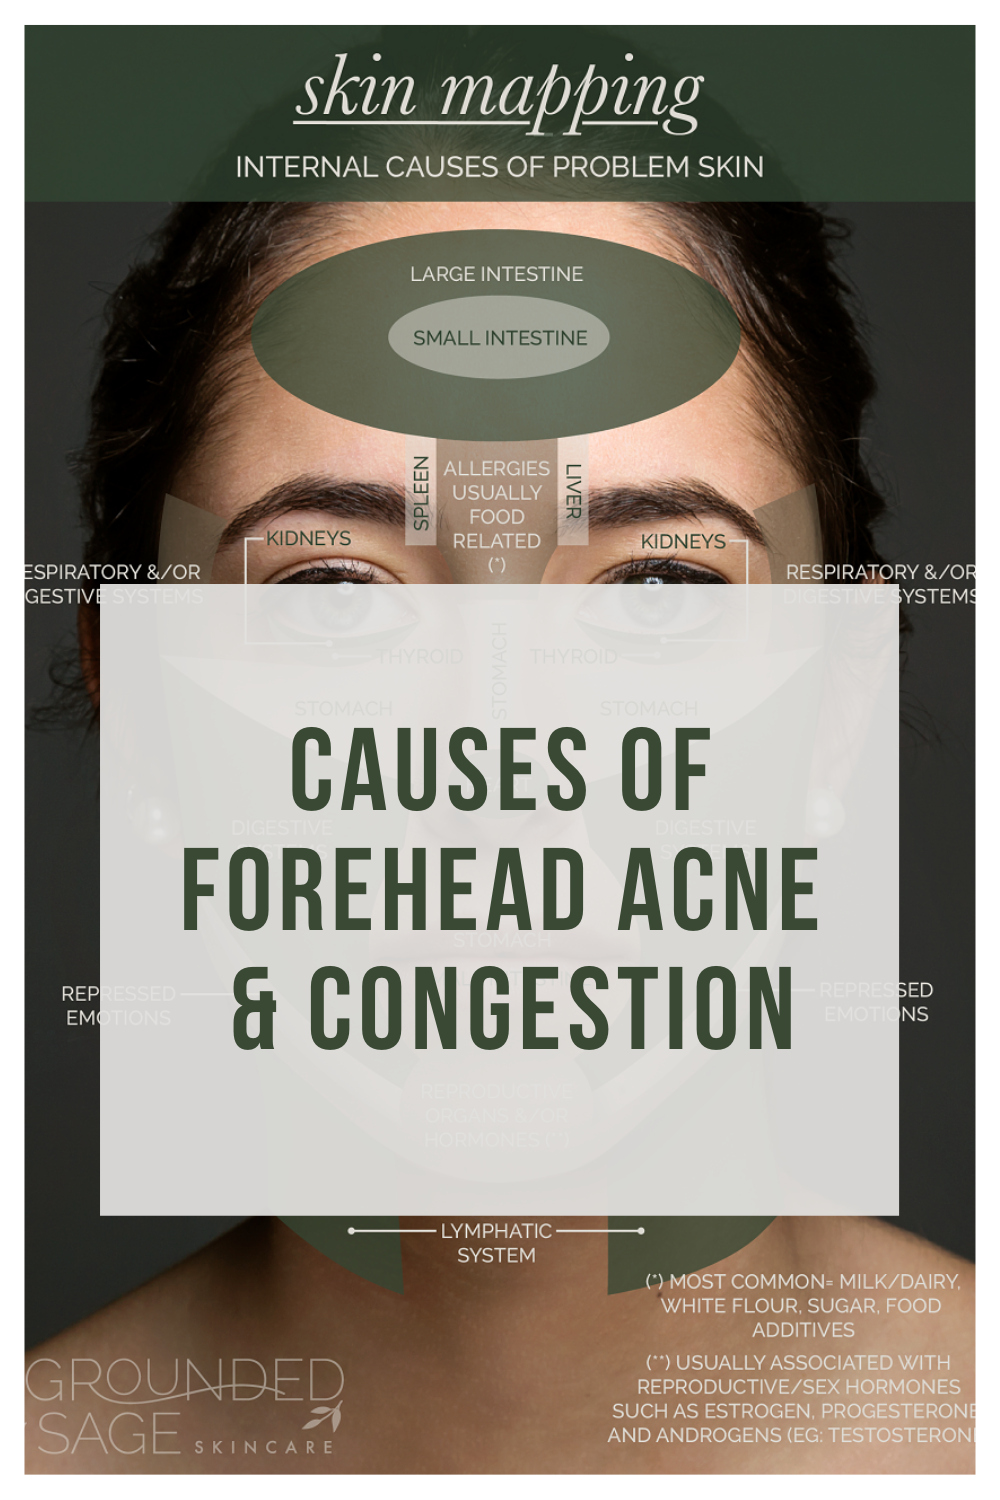 forehead acne cause and how to get rid of small bumps on your forehead. Which skincare products are best for clearing up tiny little bumps for sensitive skin naturally. Natural treatment for clogged pores on forehead and face. Green beauty skin care routine tips.